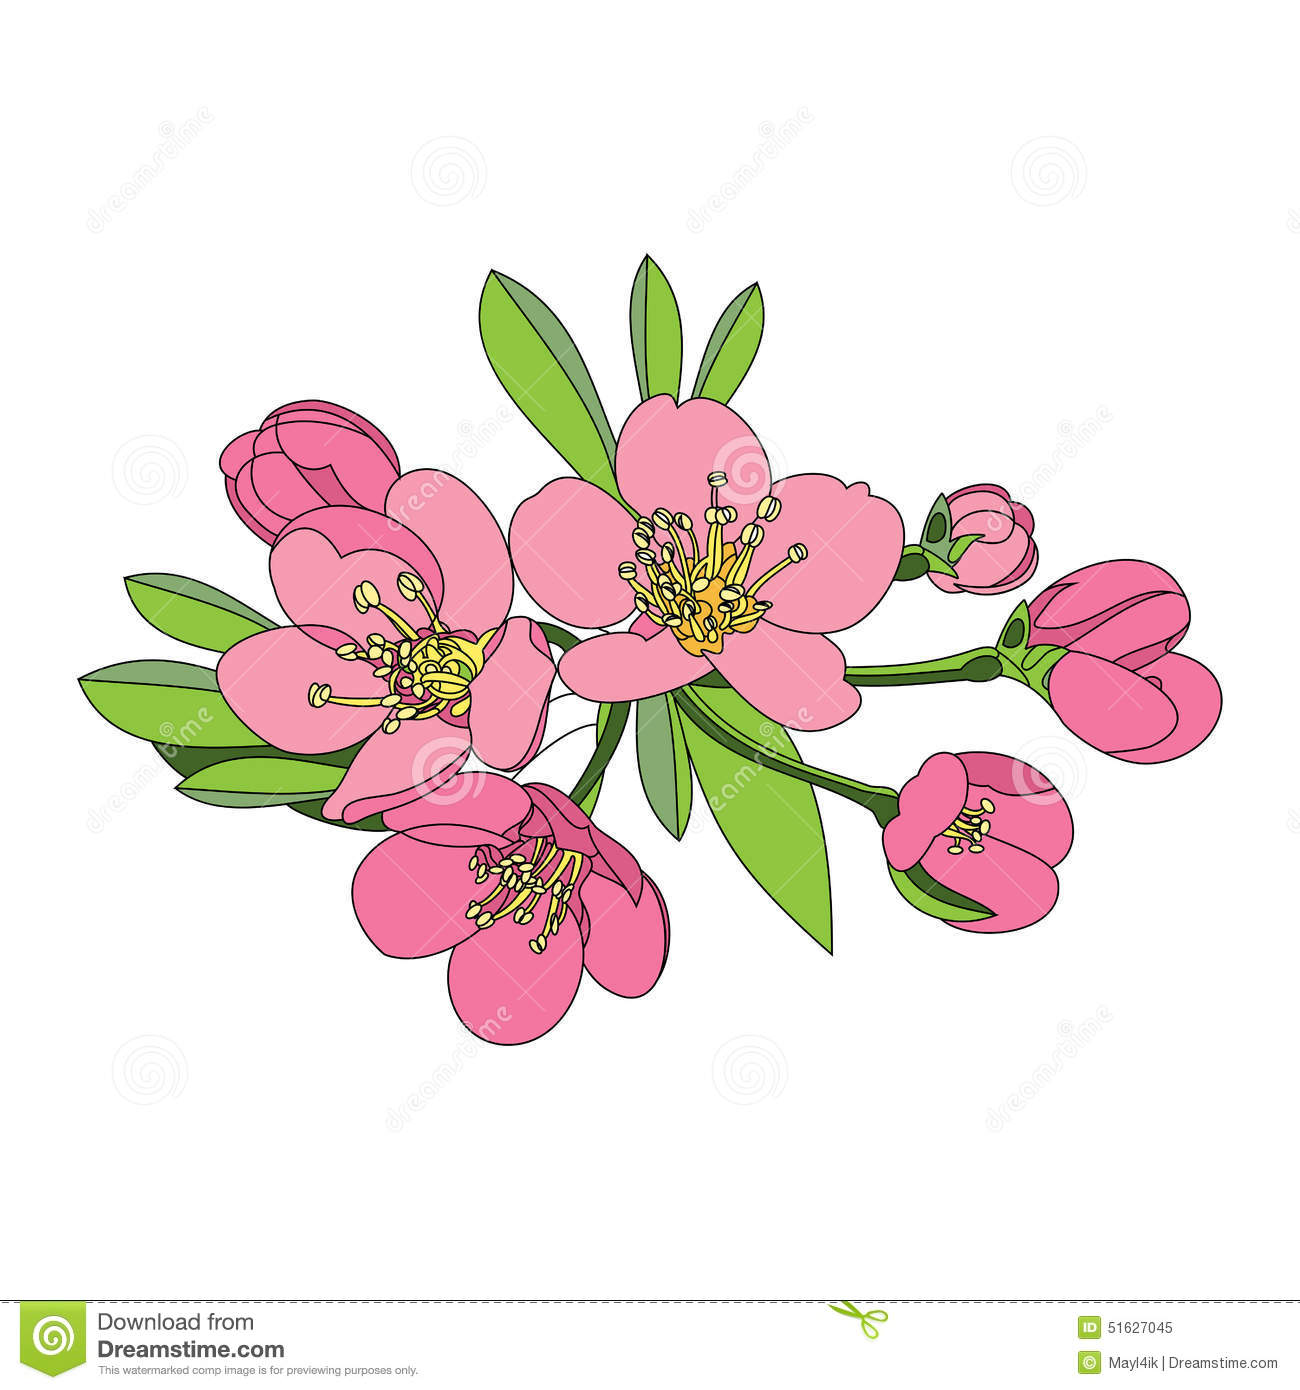 Apricot Blossom clipart #2, Download drawings